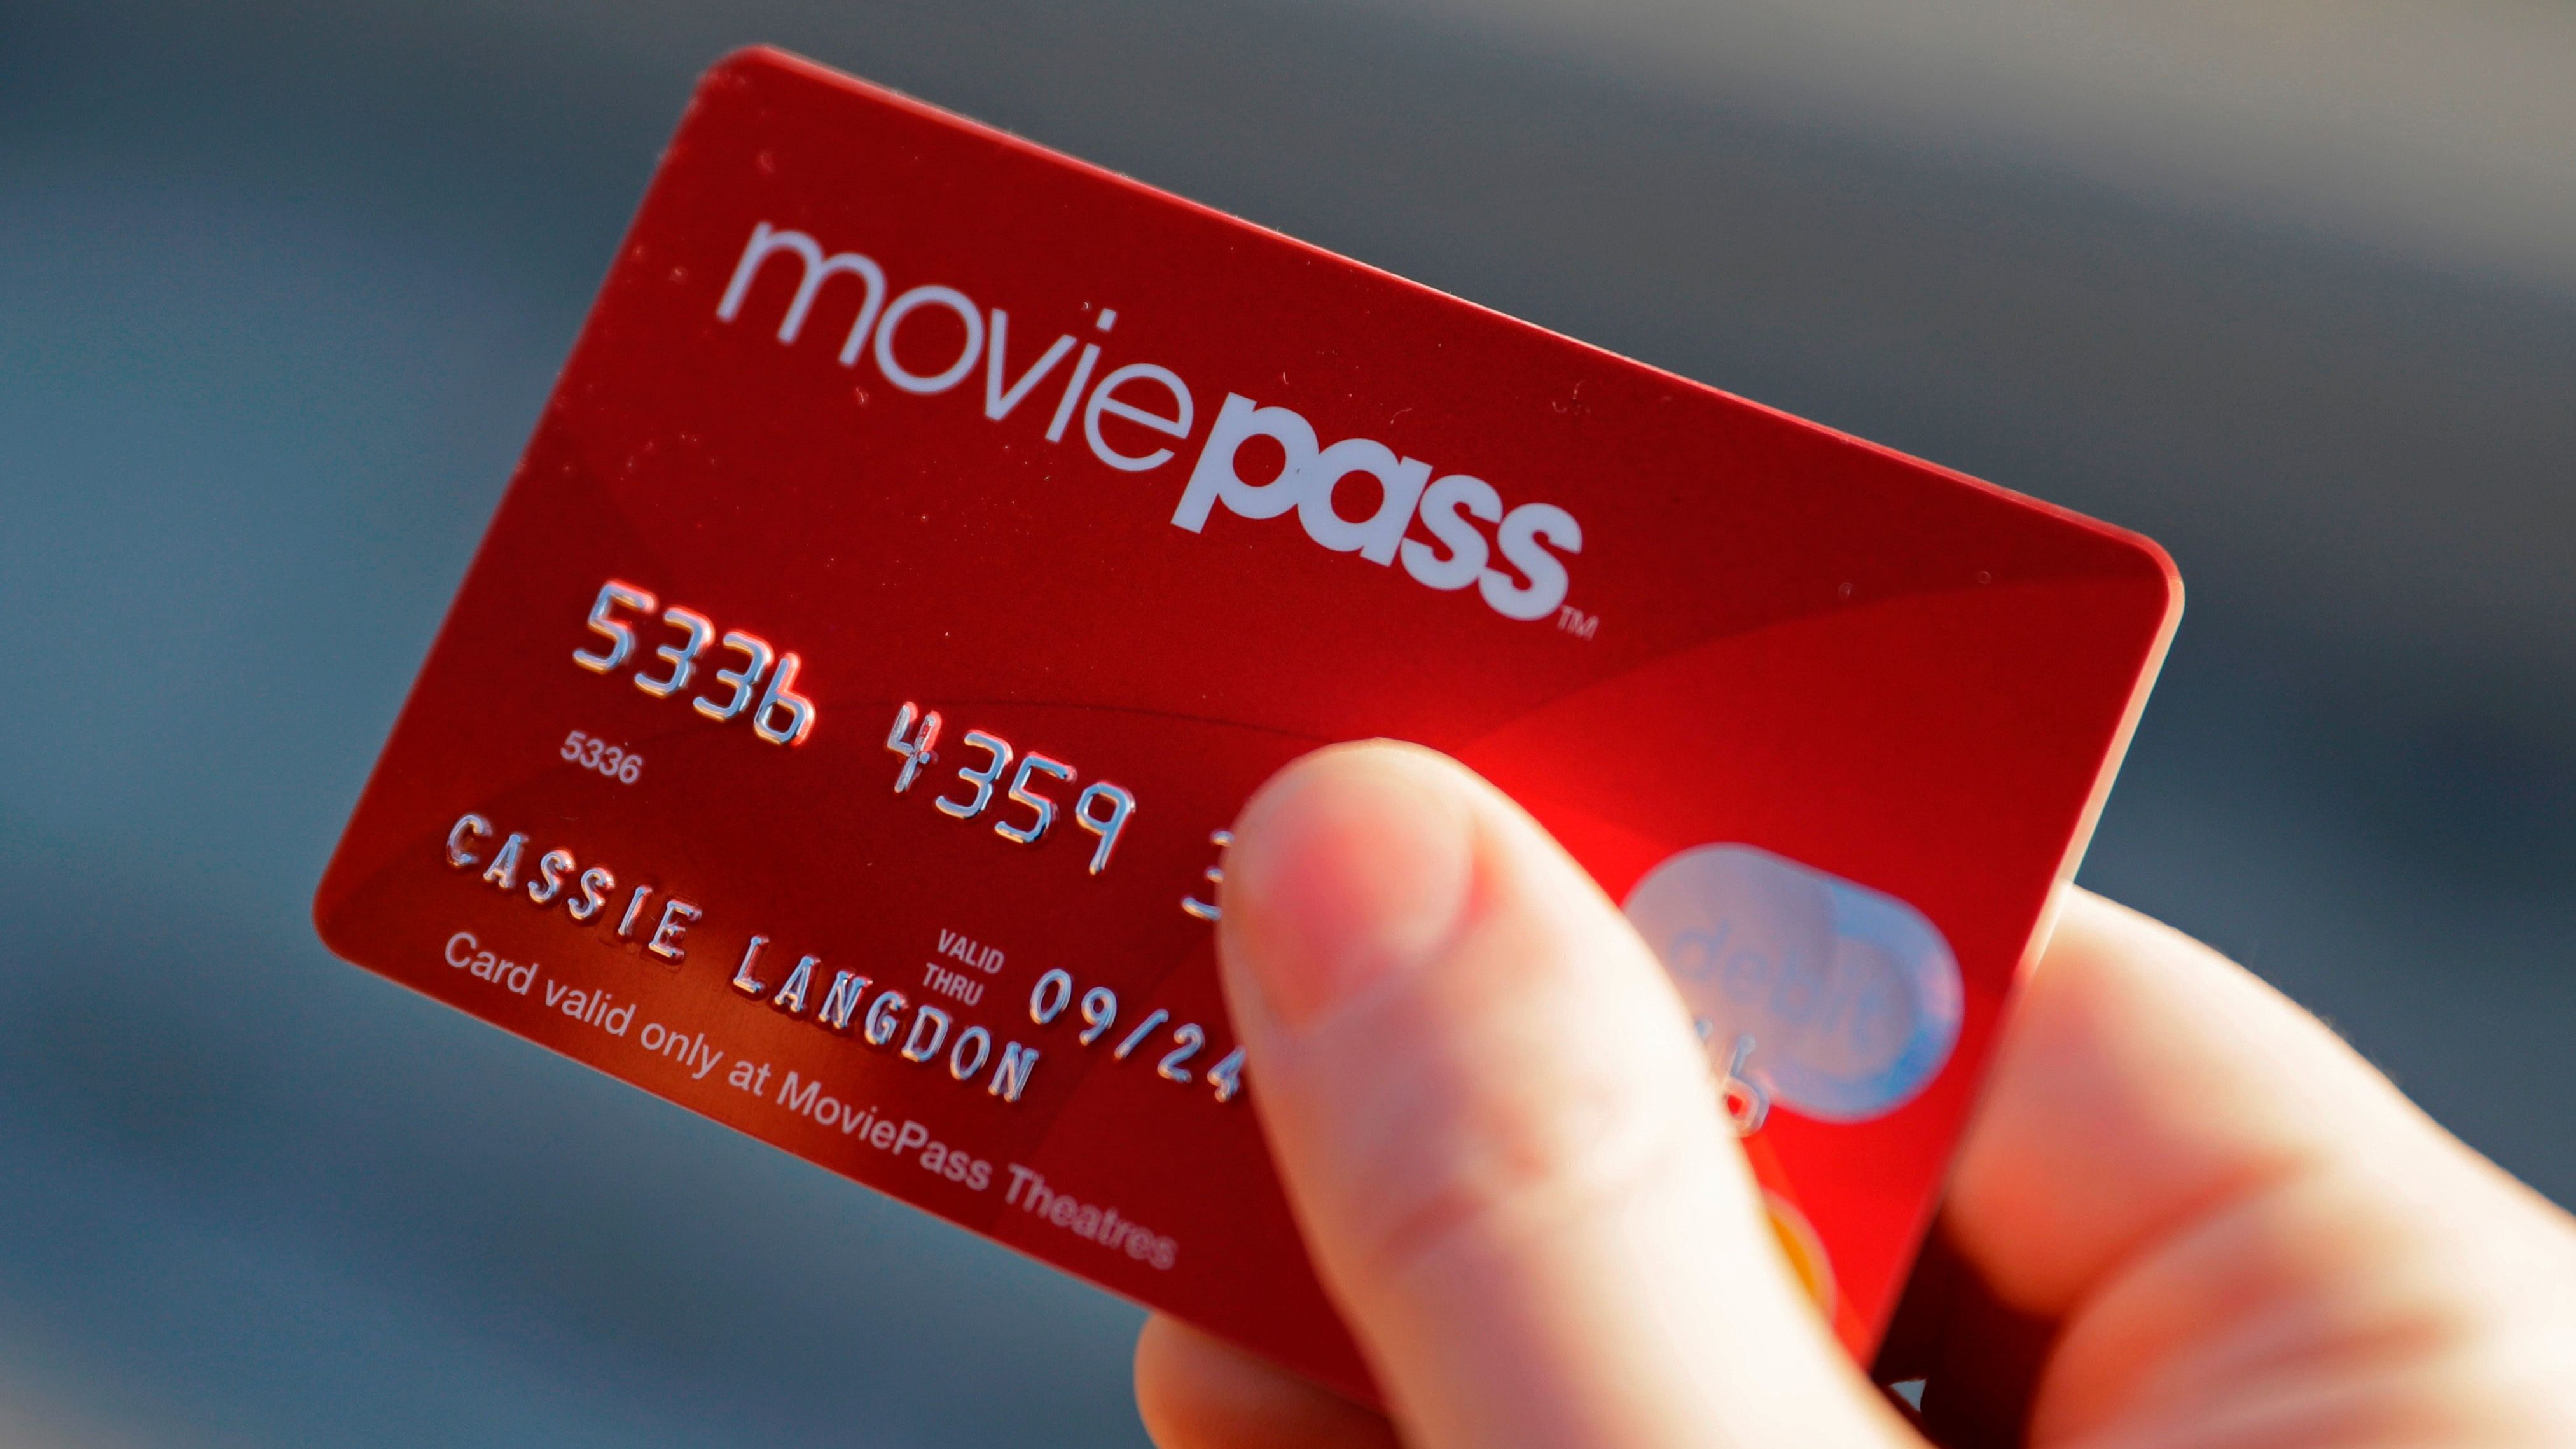 FILE - In this Jan. 30, 2018 file photo, Cassie Langdon holds her MoviePass card outside AMC Indianapolis 17 theatre in Indianapolis. The startup that lets customers watch a movie a day at theaters for just $10 a month, is limiting new customers to just four movies a month. The move comes as customers and industry experts question the sustainability of MoviePass' business model. Because MoviePass is paying most theaters the full price of the ticket, the service is in the red with just one or two movies in a month. (AP Photo/Darron Cummings, File)